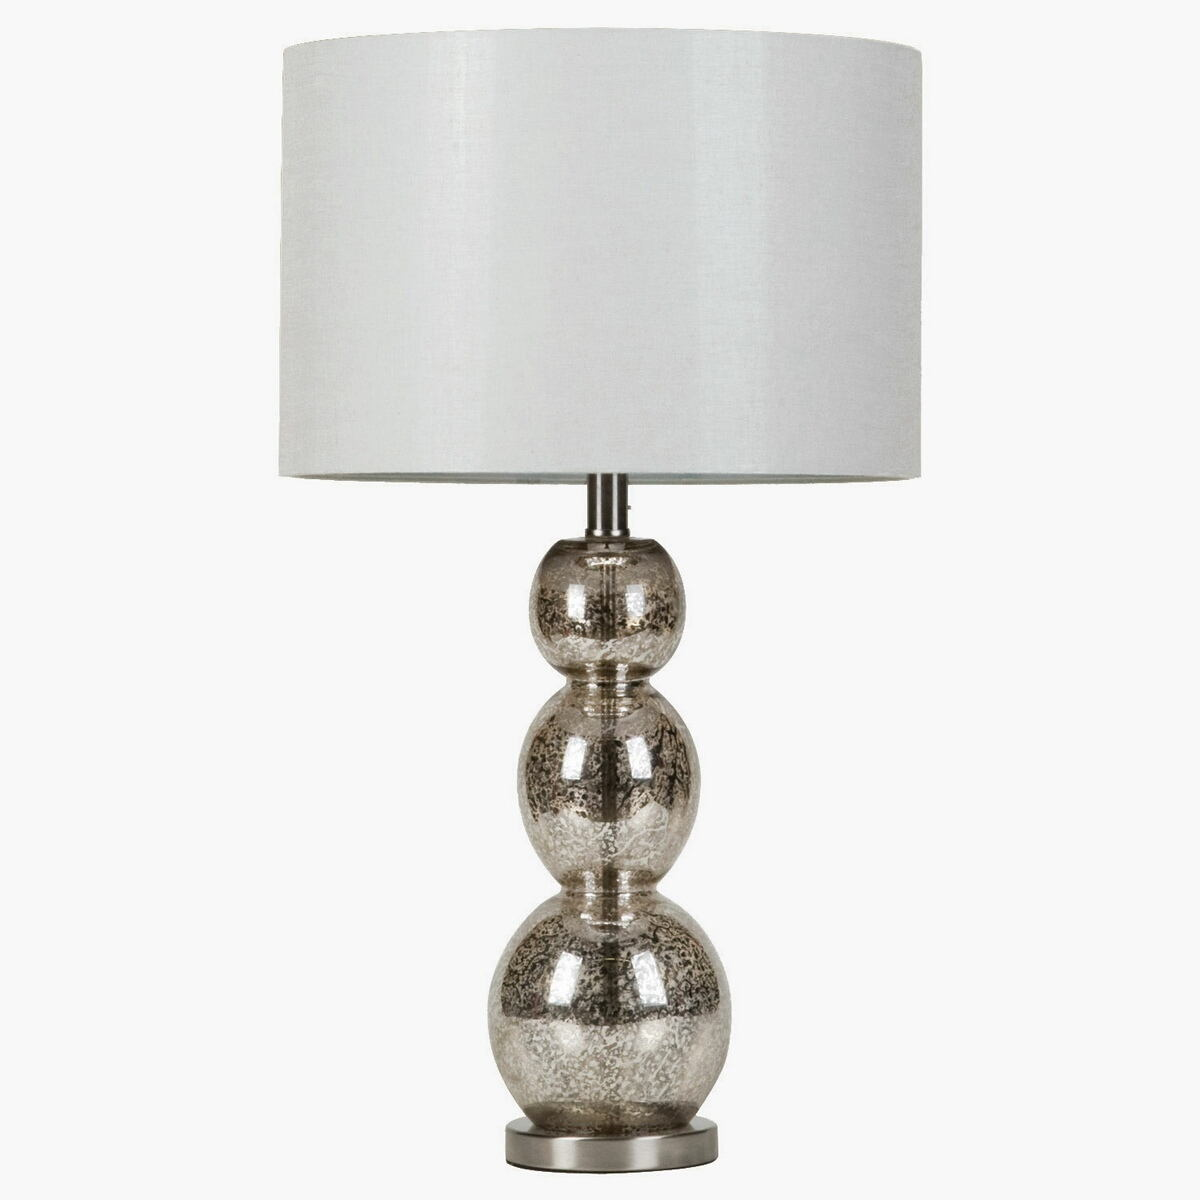 Contemporary style mottled tortoiseshell finish table lamp with unique sphere shape base